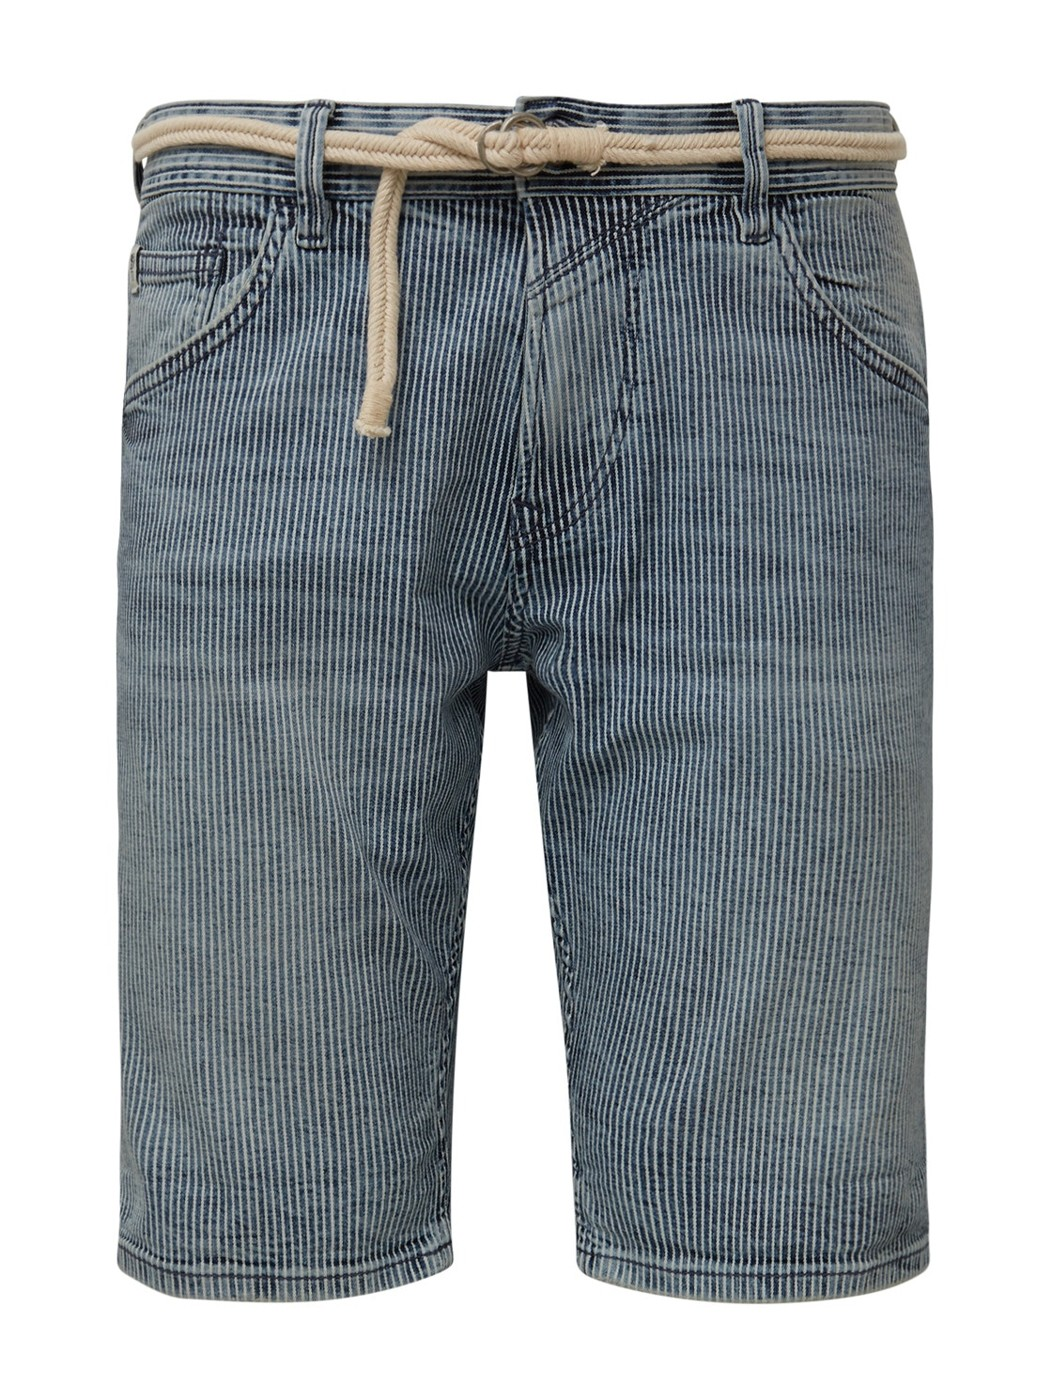 regular denim shorts with belt - Herren